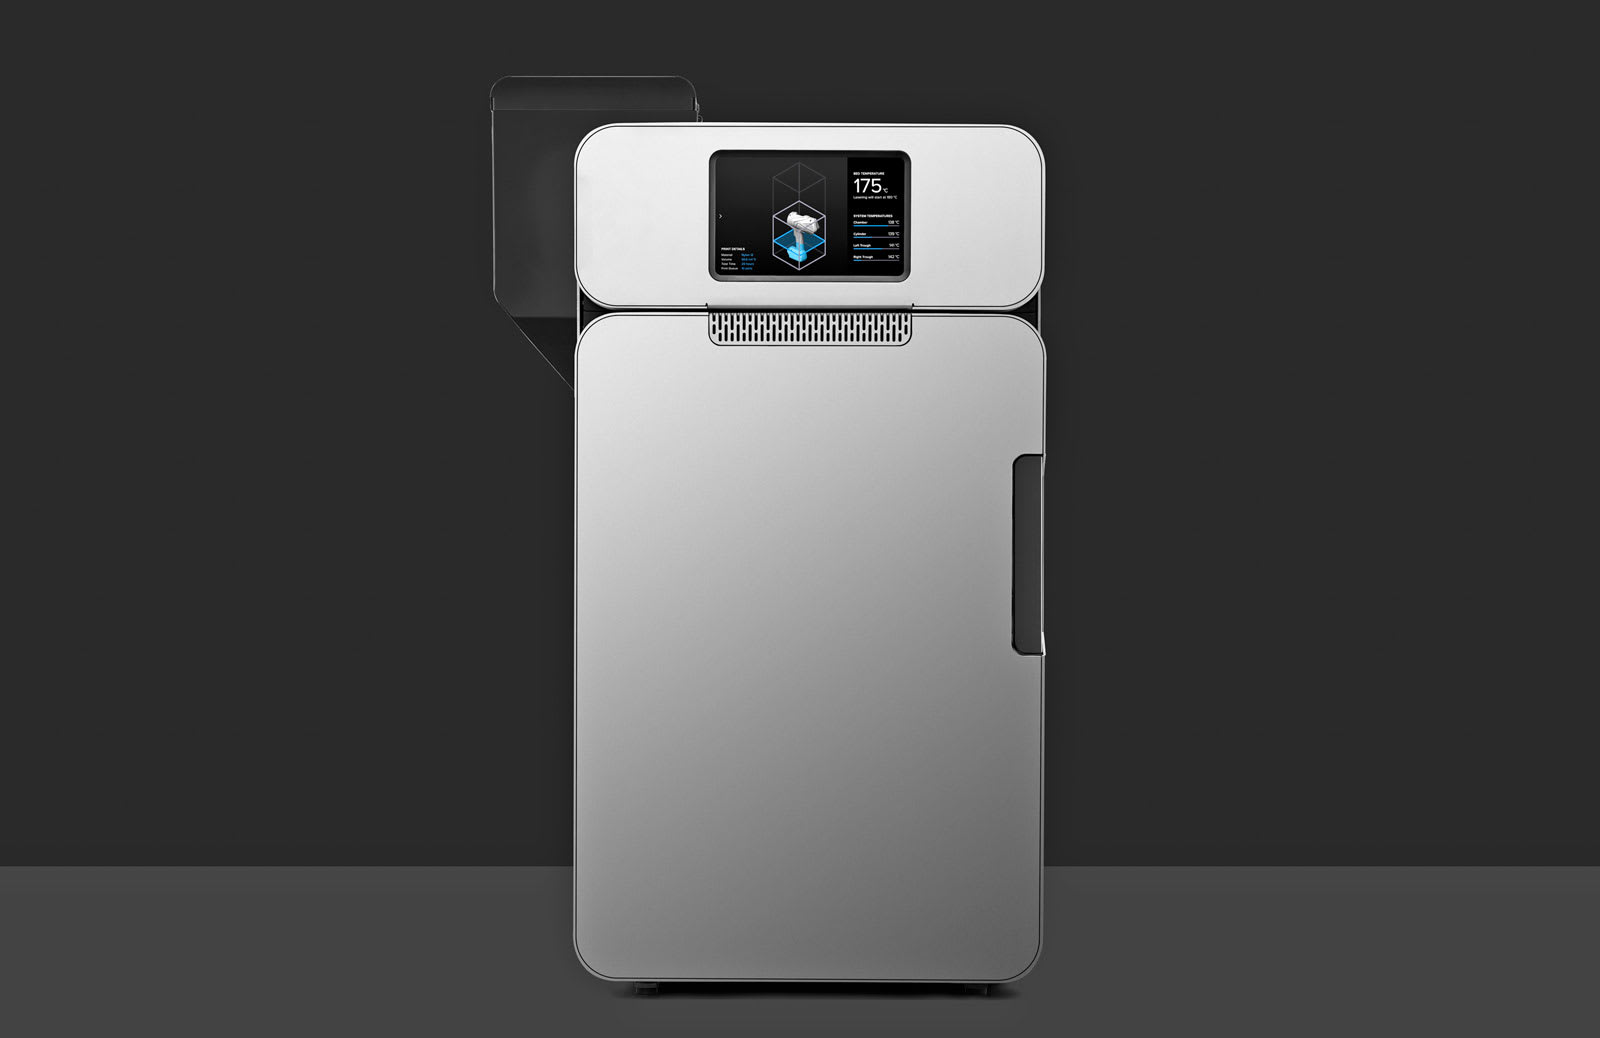 Formlabs makes high-quality, automated 3D printing more